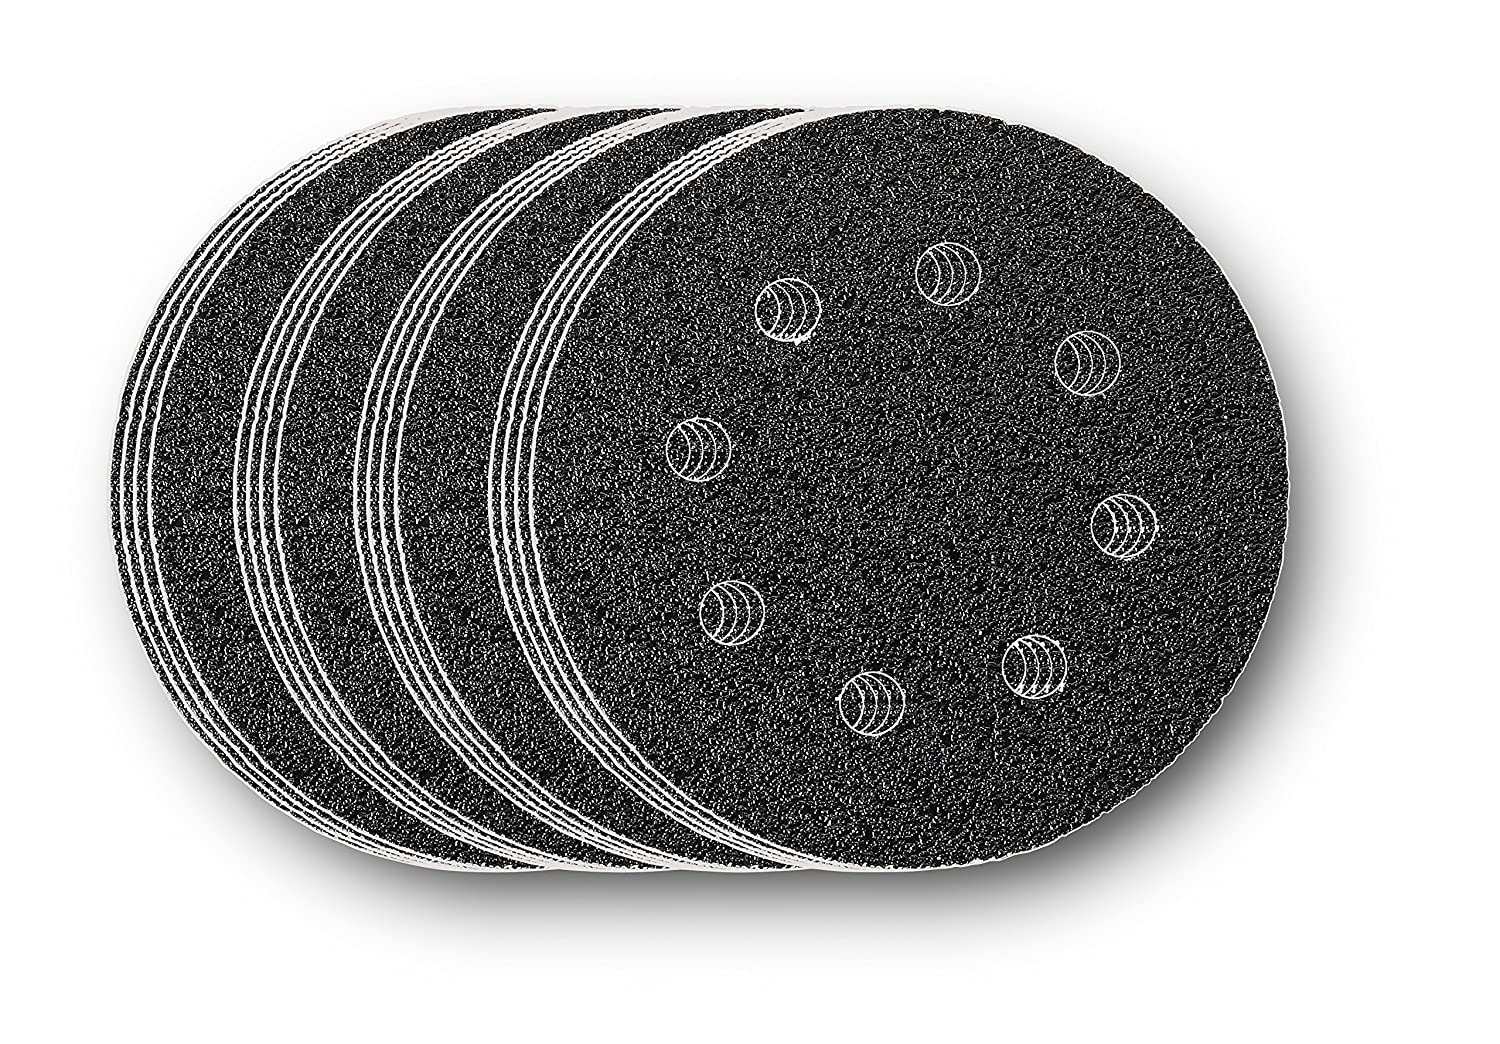 Multi-Colour 16-Pack Fein FMM-Accy Round Perforated G240 Sanding Sheet 240 Grit